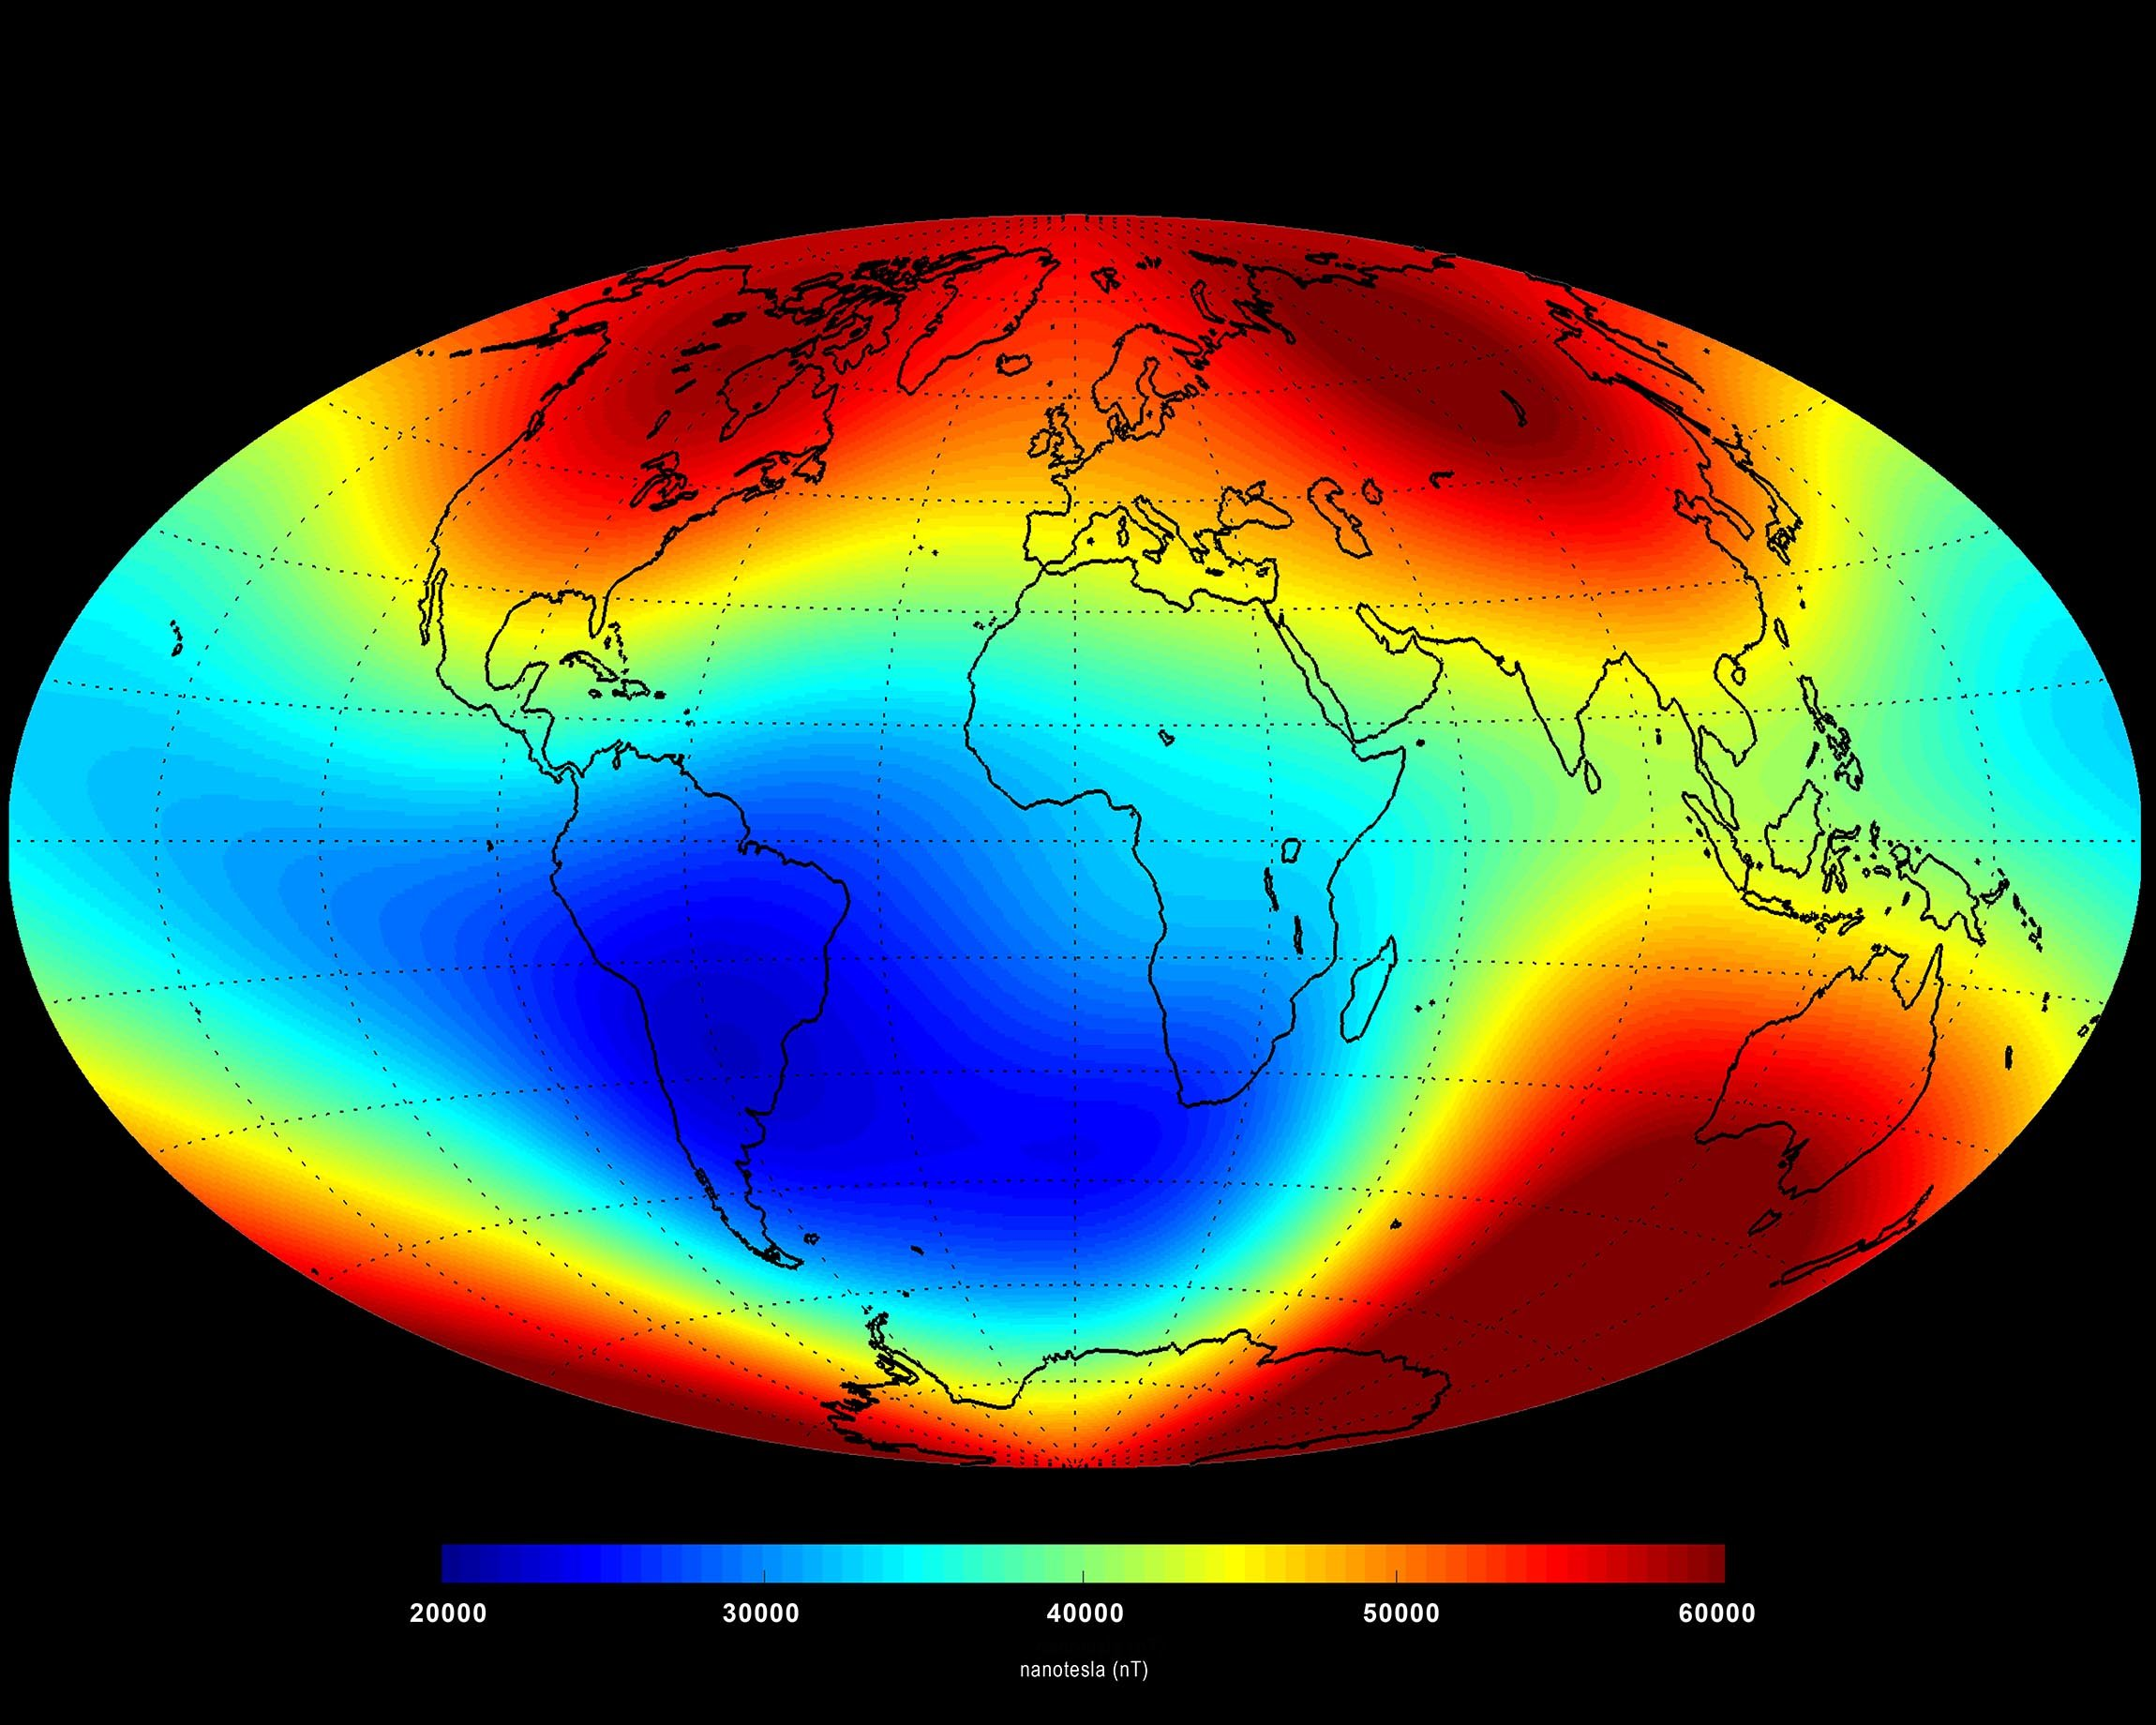 Earth's magnetic poles could start to flip. What happens then?